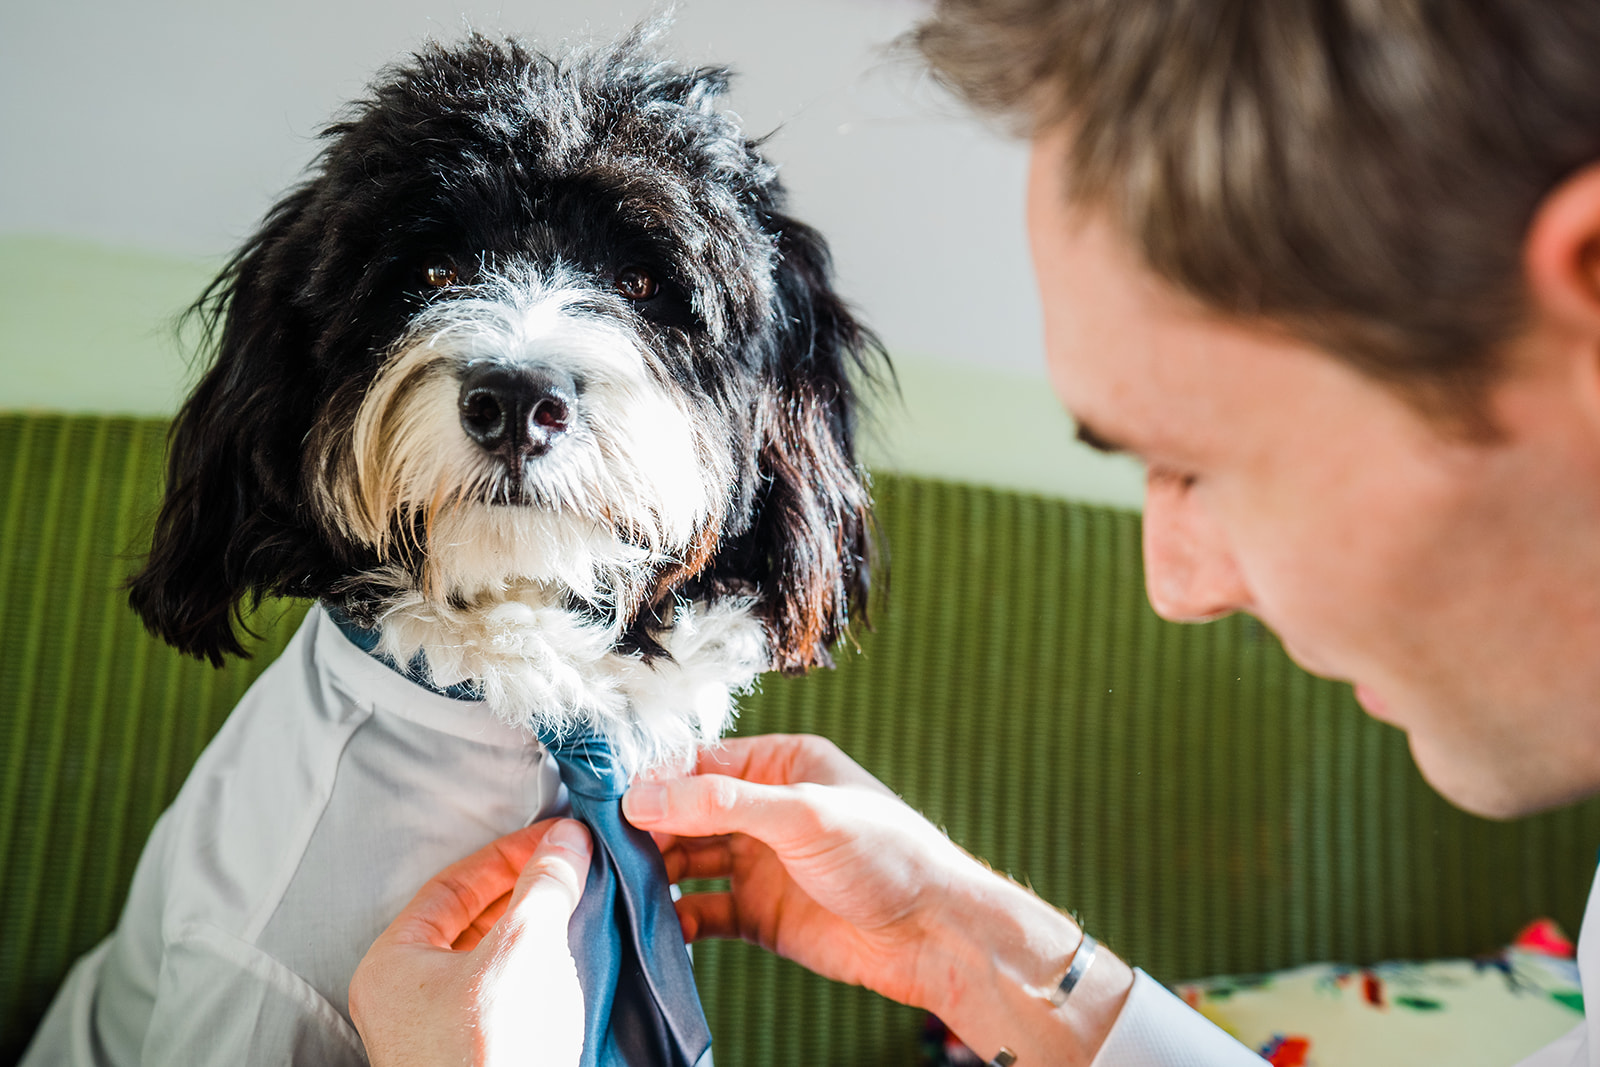 black and white shaggy dog at a wedding wearing a shirt and having his cravat tied by the groom